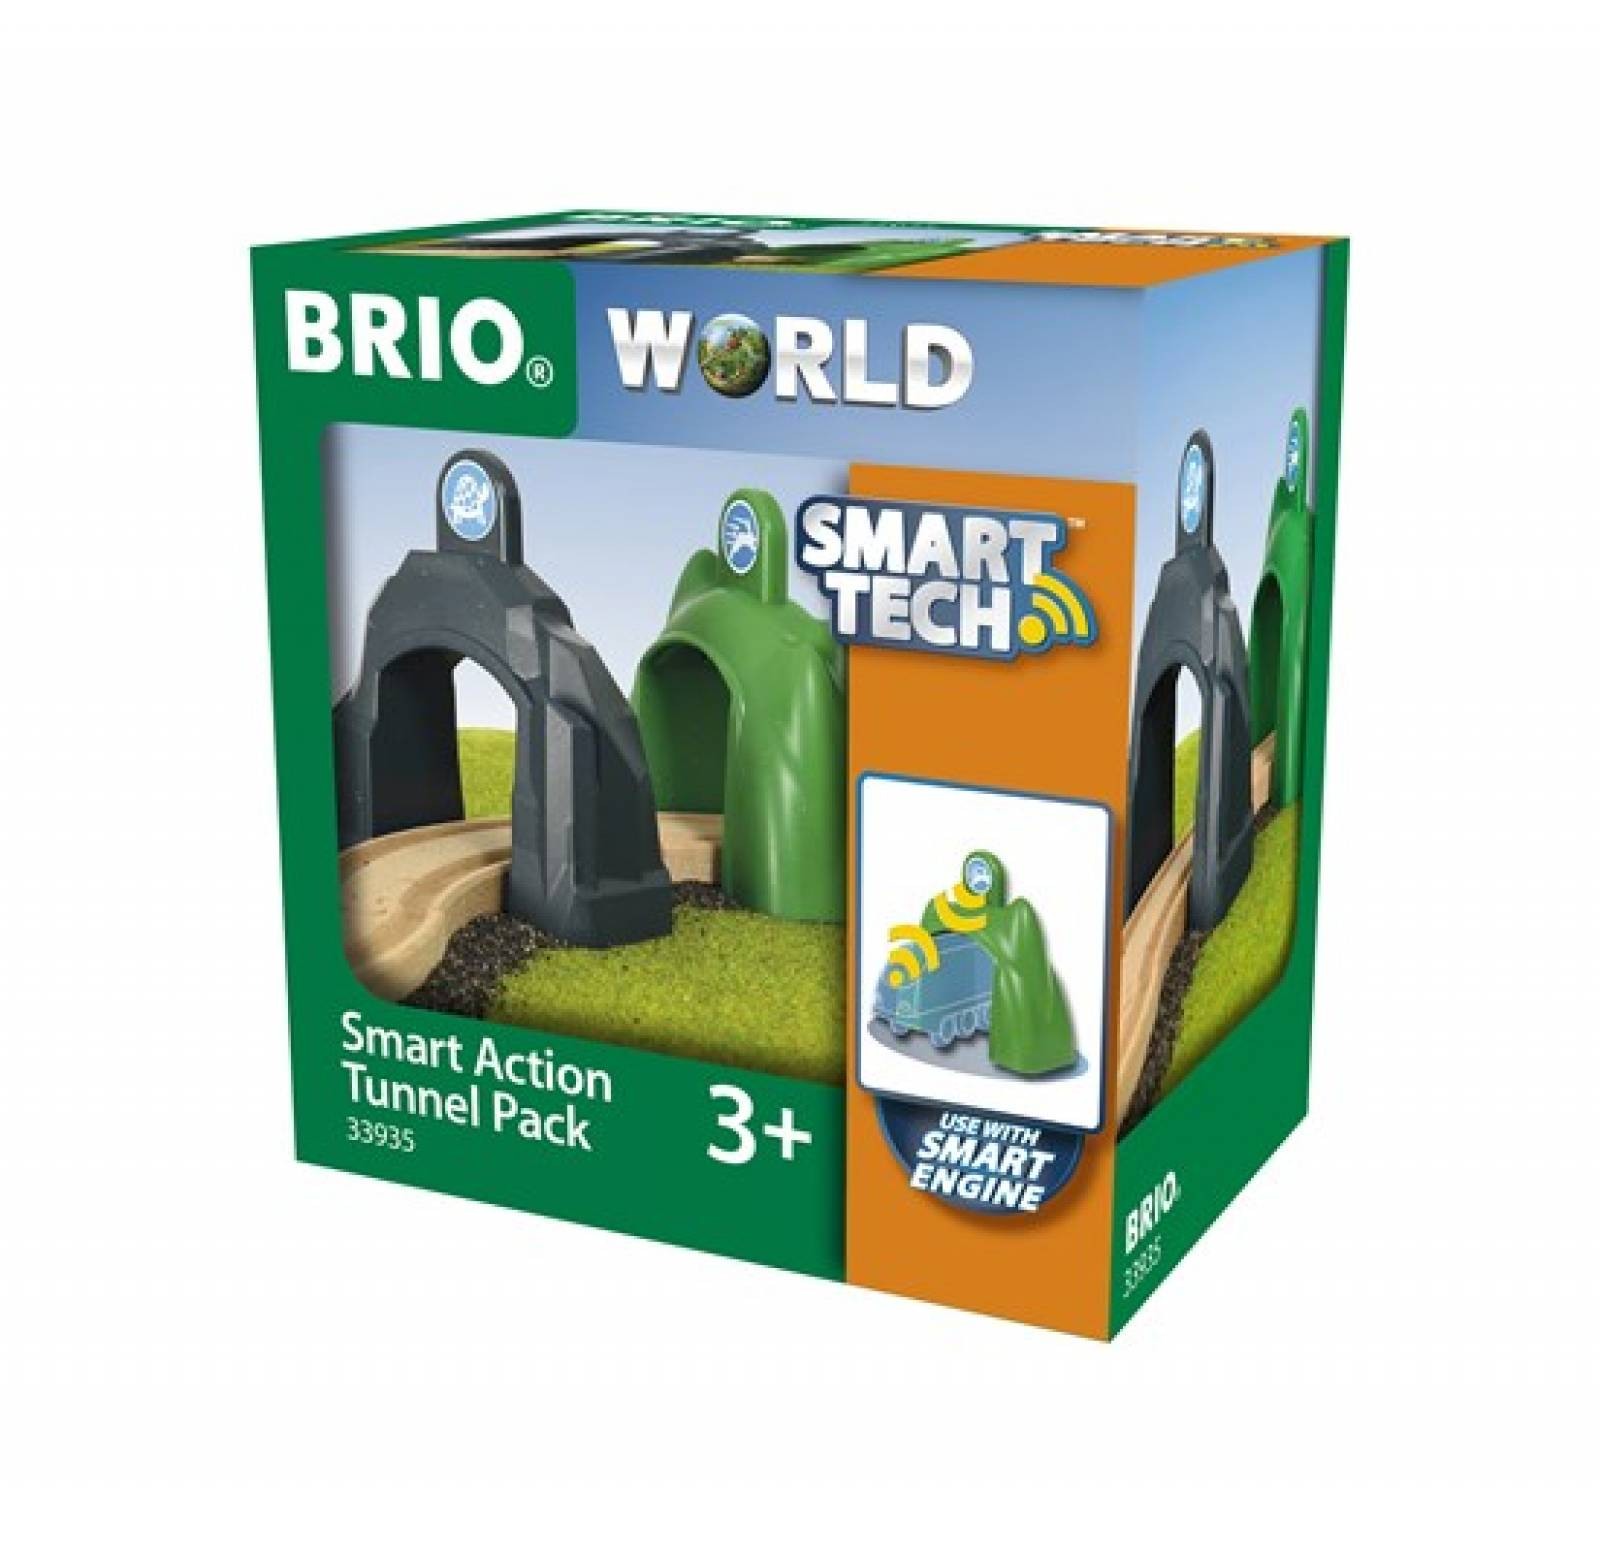 Smart Tech Action Tunnel Pack BRIO Wooden Railway Age 3+